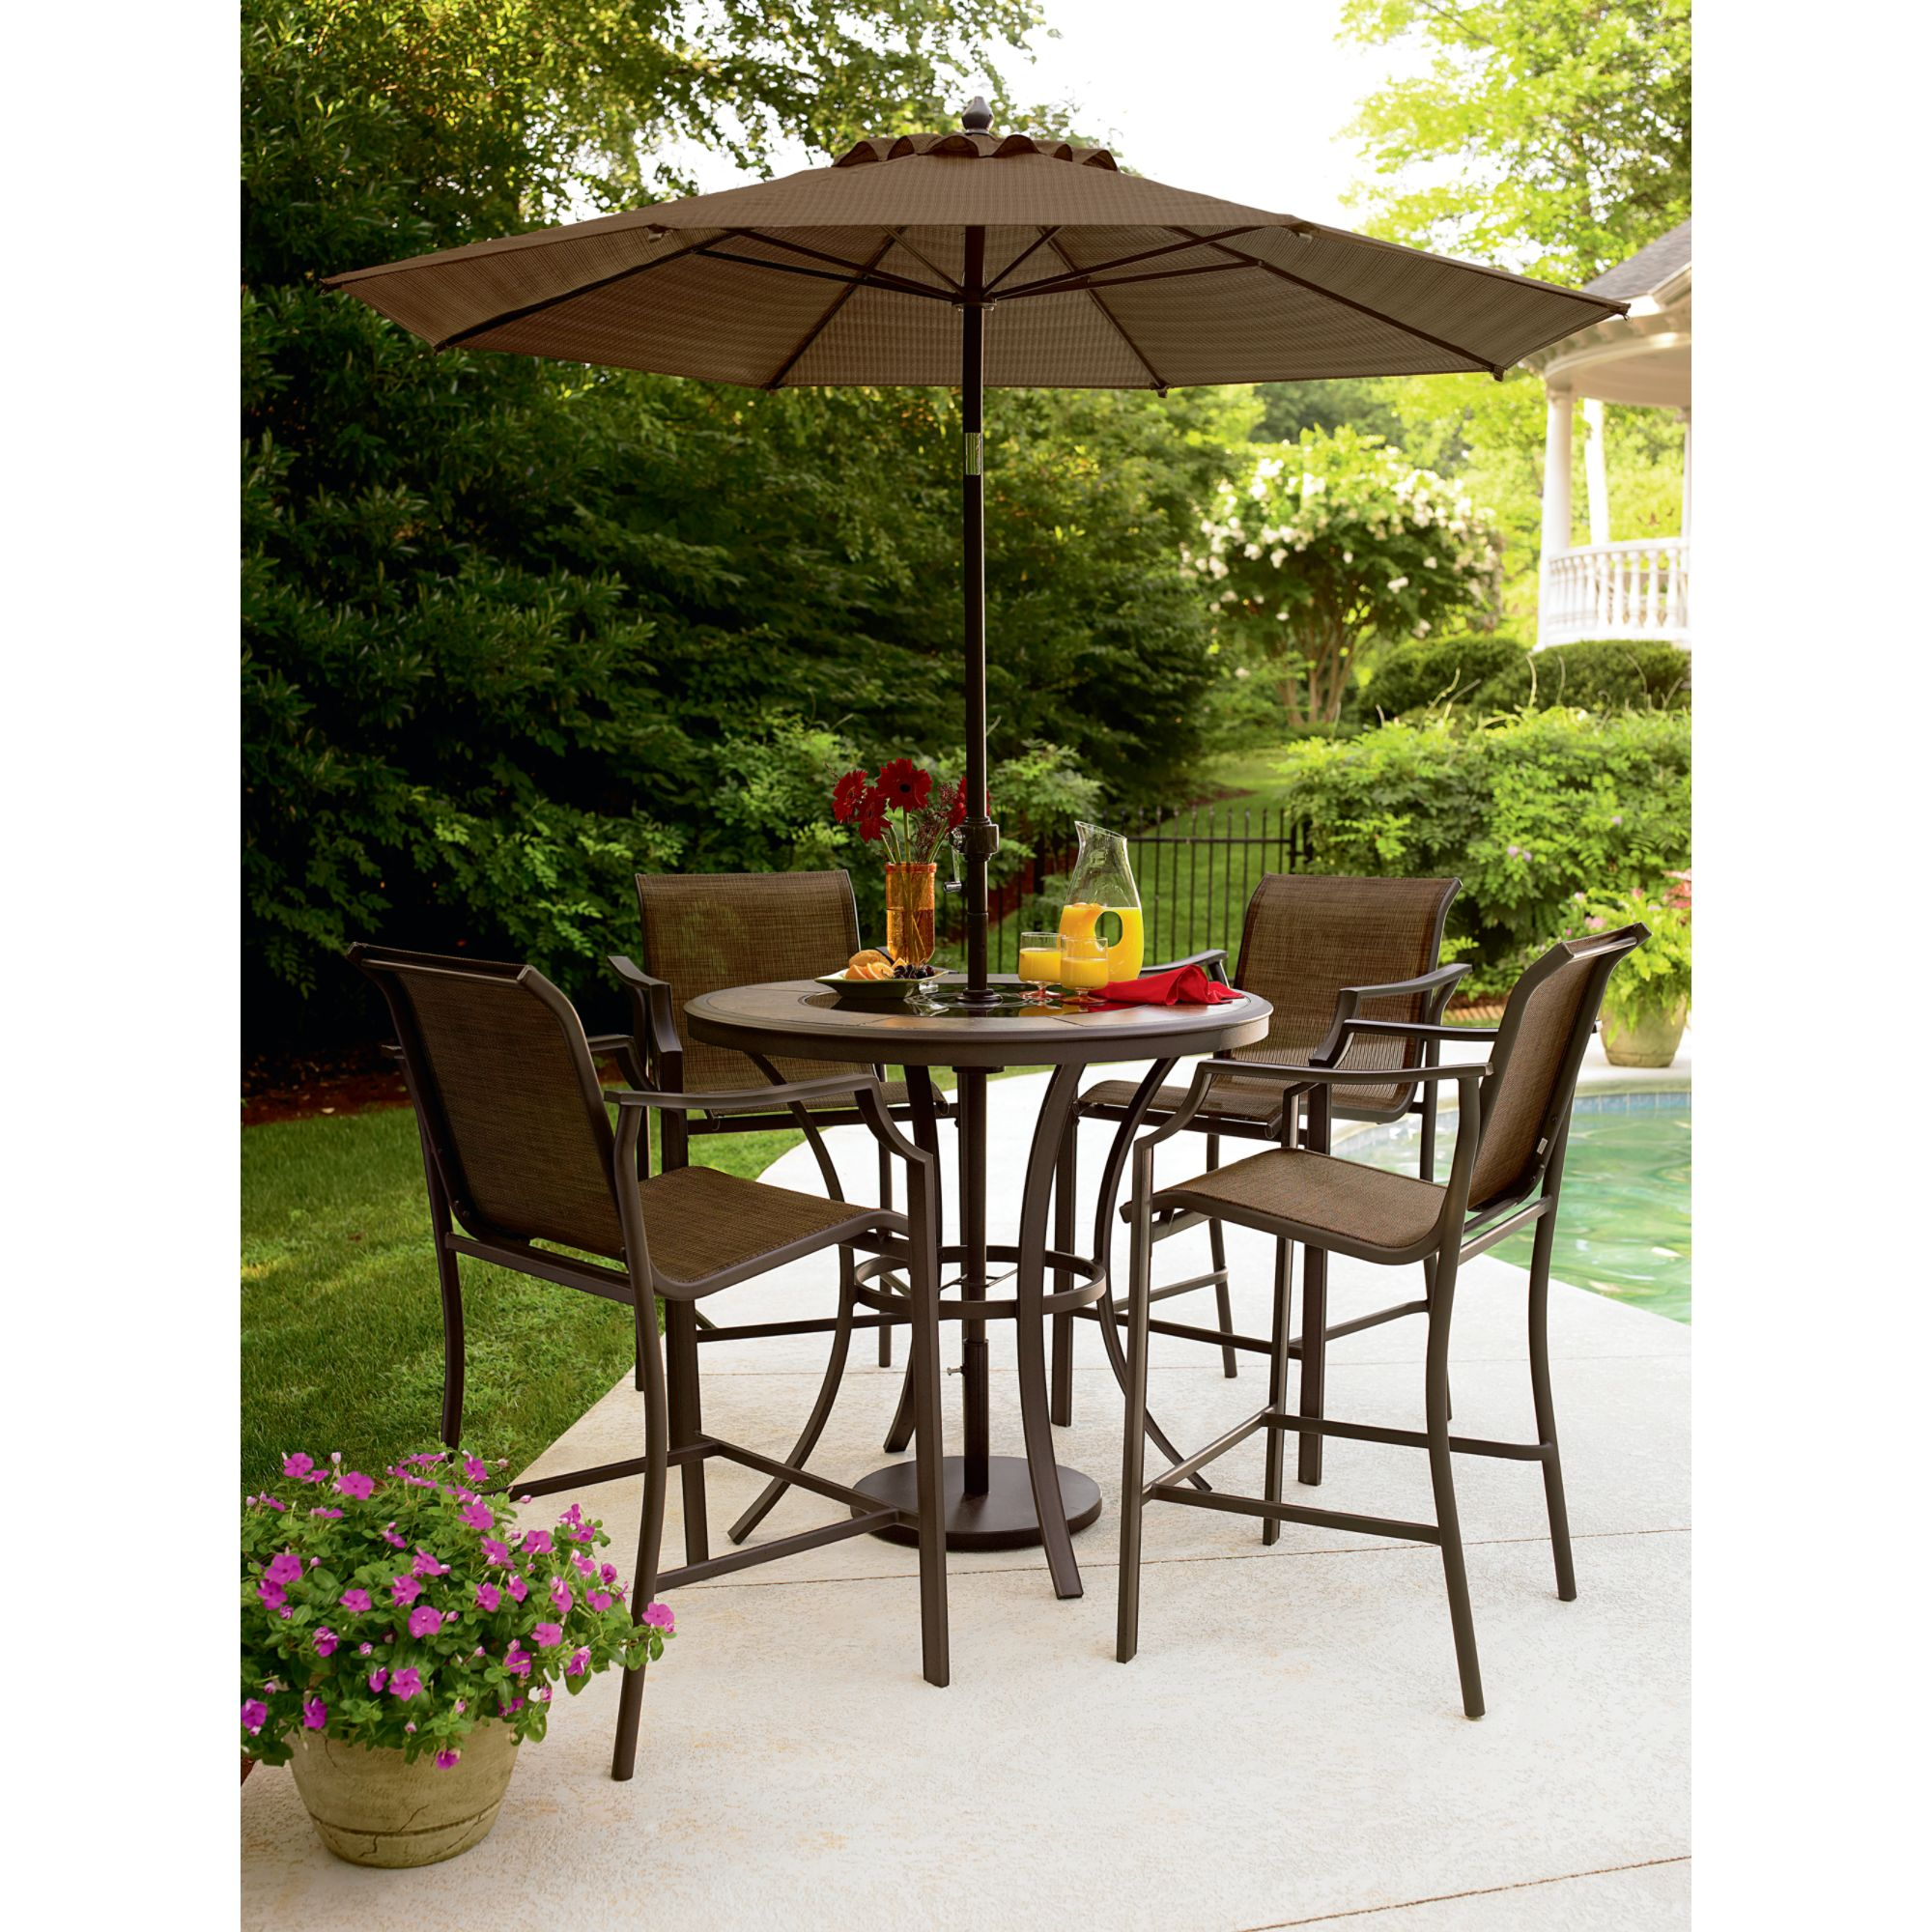 Garden Oasis Cooper Lighted High Dining Table